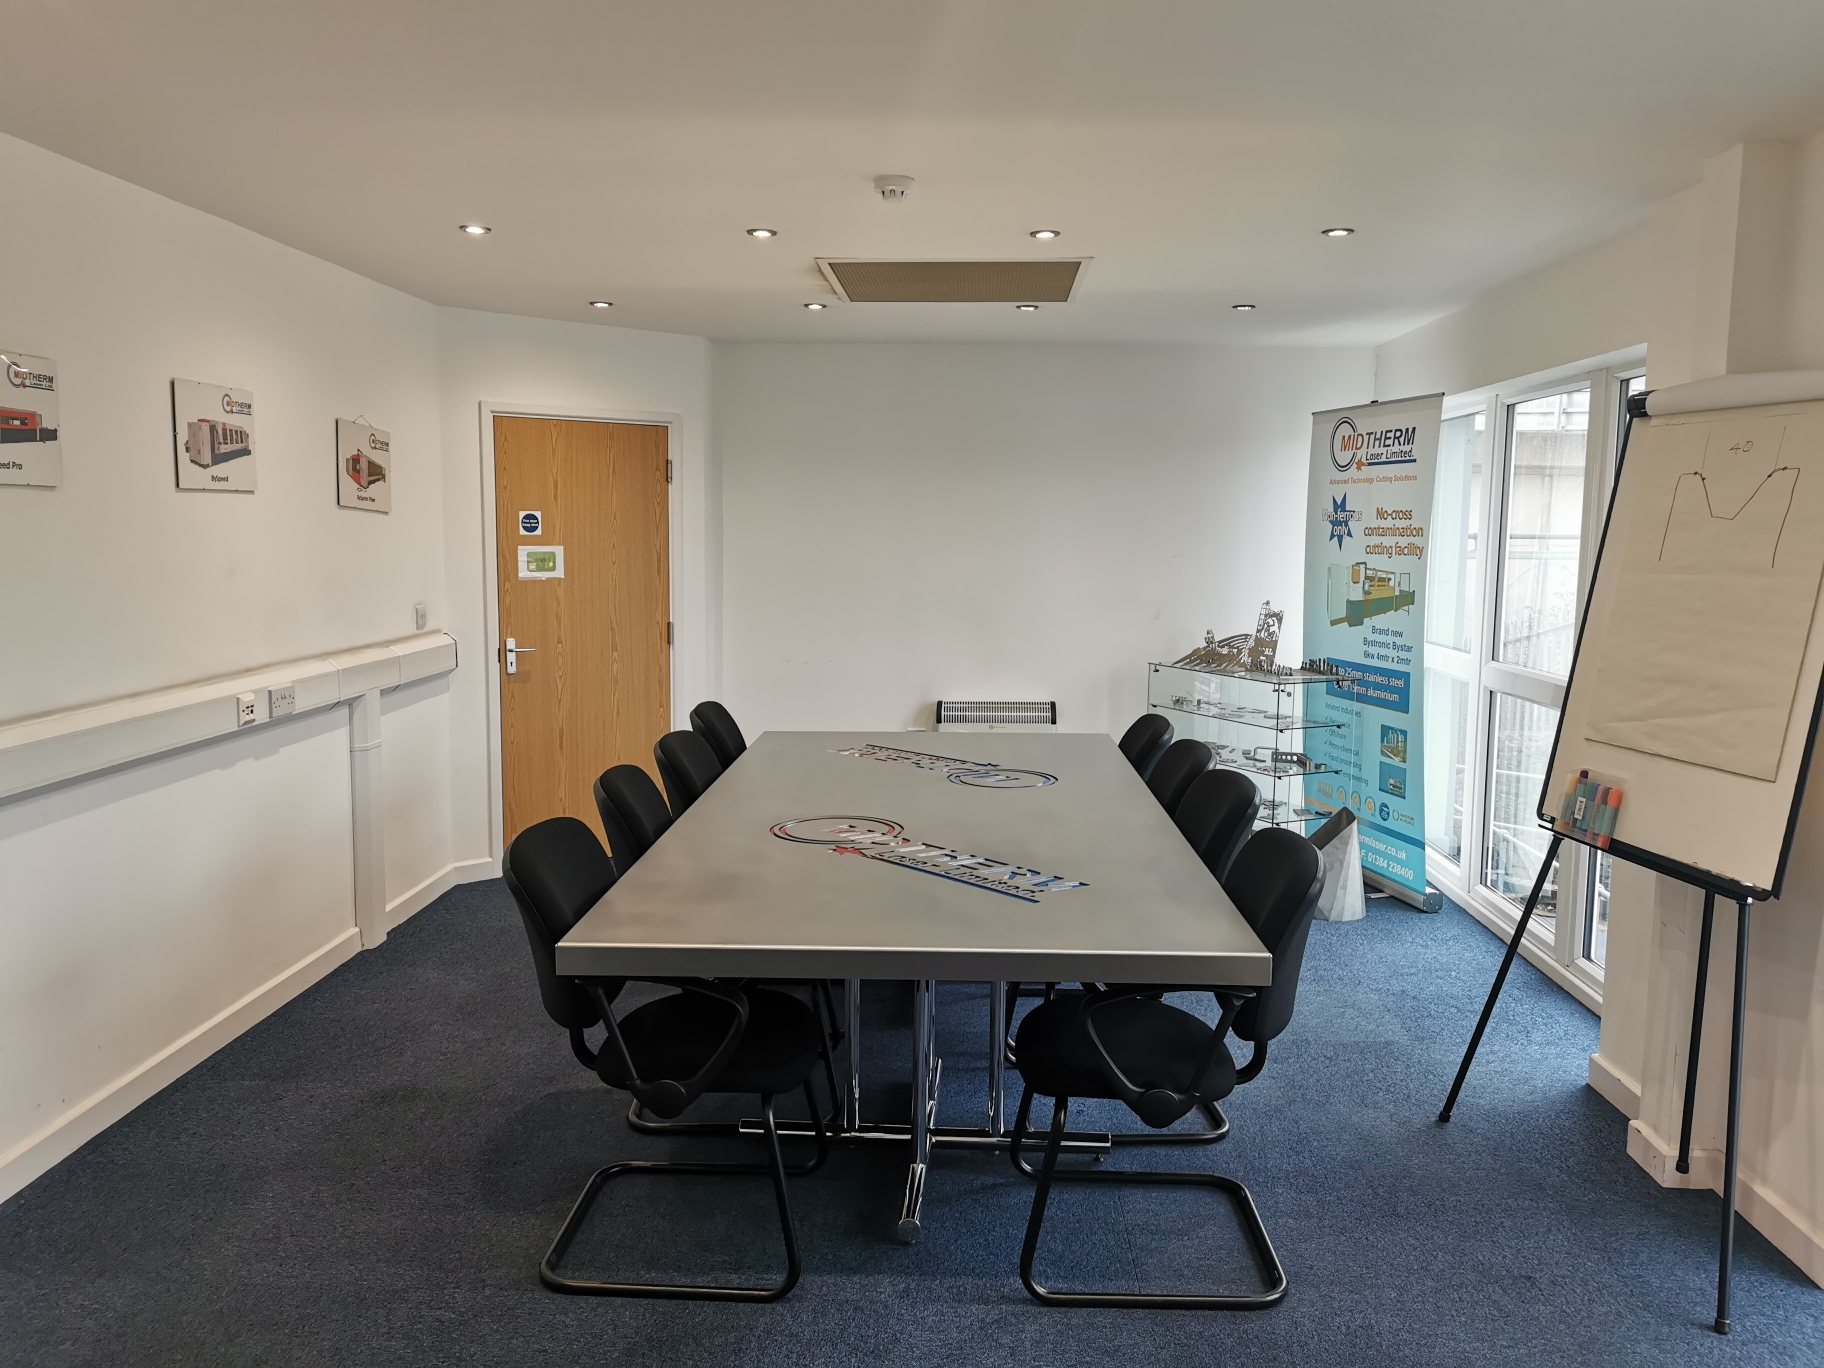 The new board room